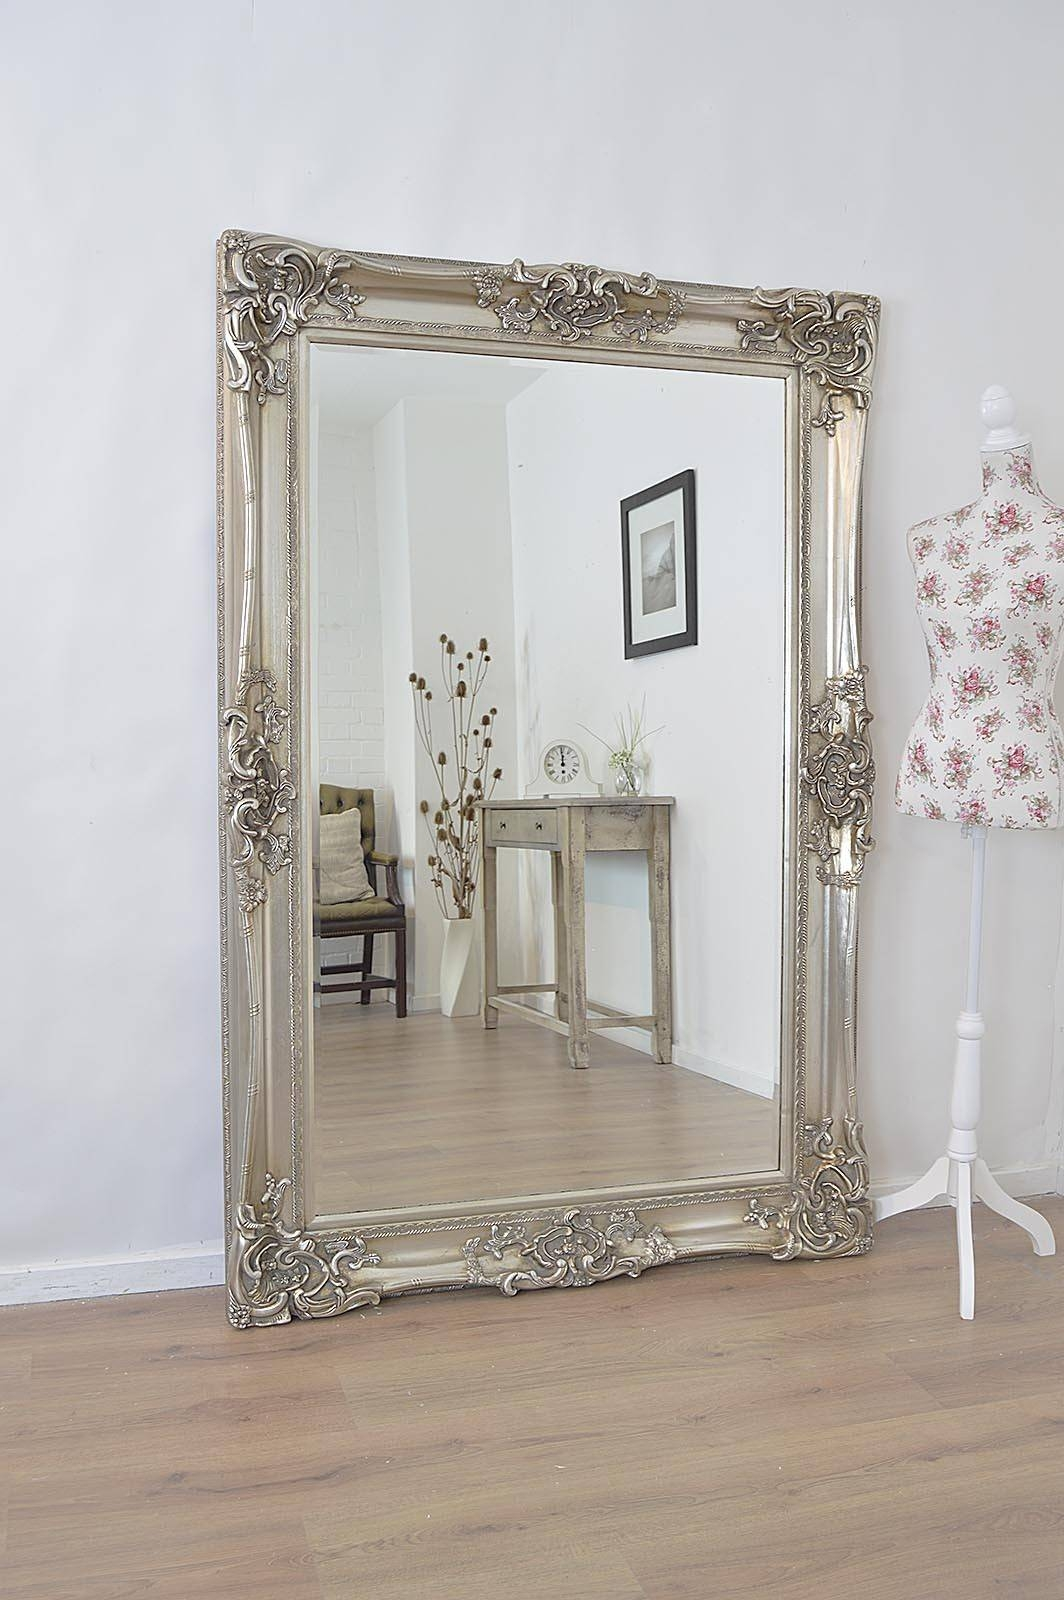 Antique Full Length Wall Mirrors Antique Wood Framed Wall Mirrors with Ornate Antique Mirrors (Image 5 of 15)